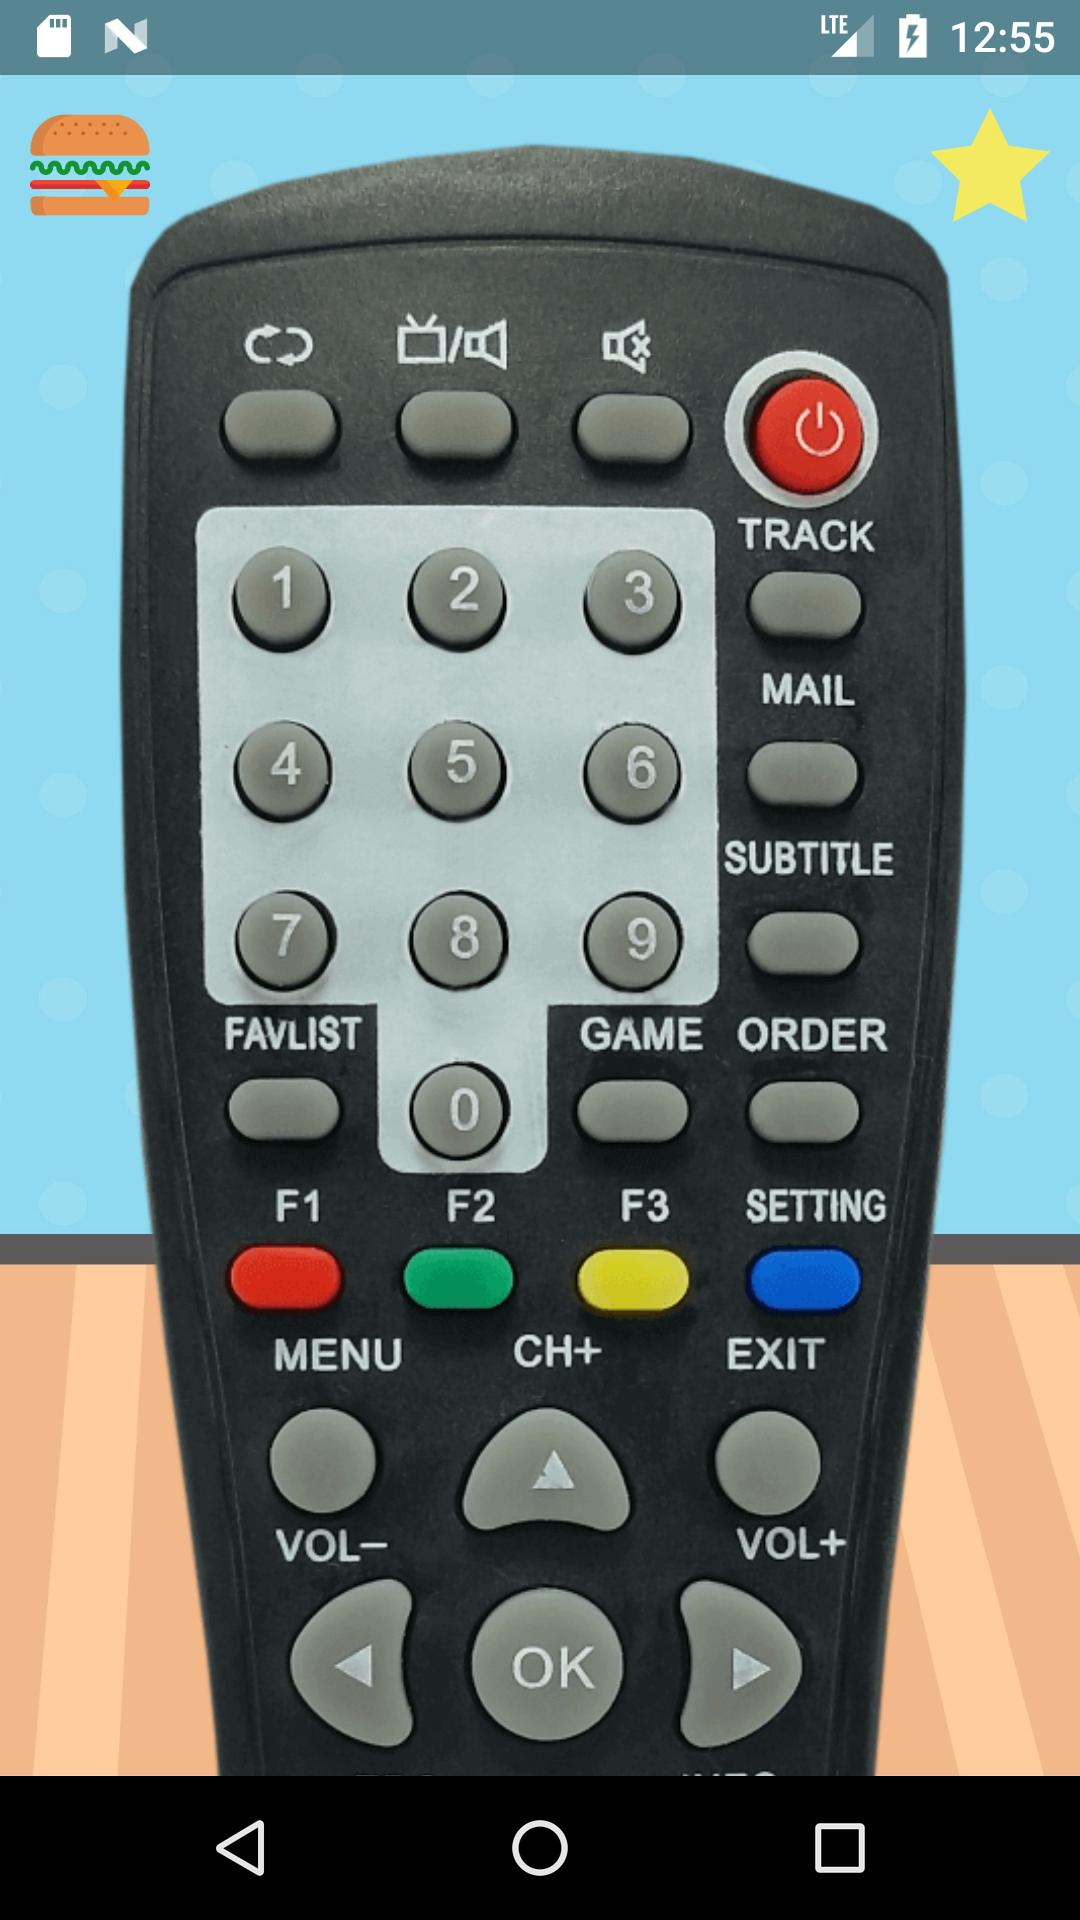 Remote Control For StarTimes for Android - APK Download